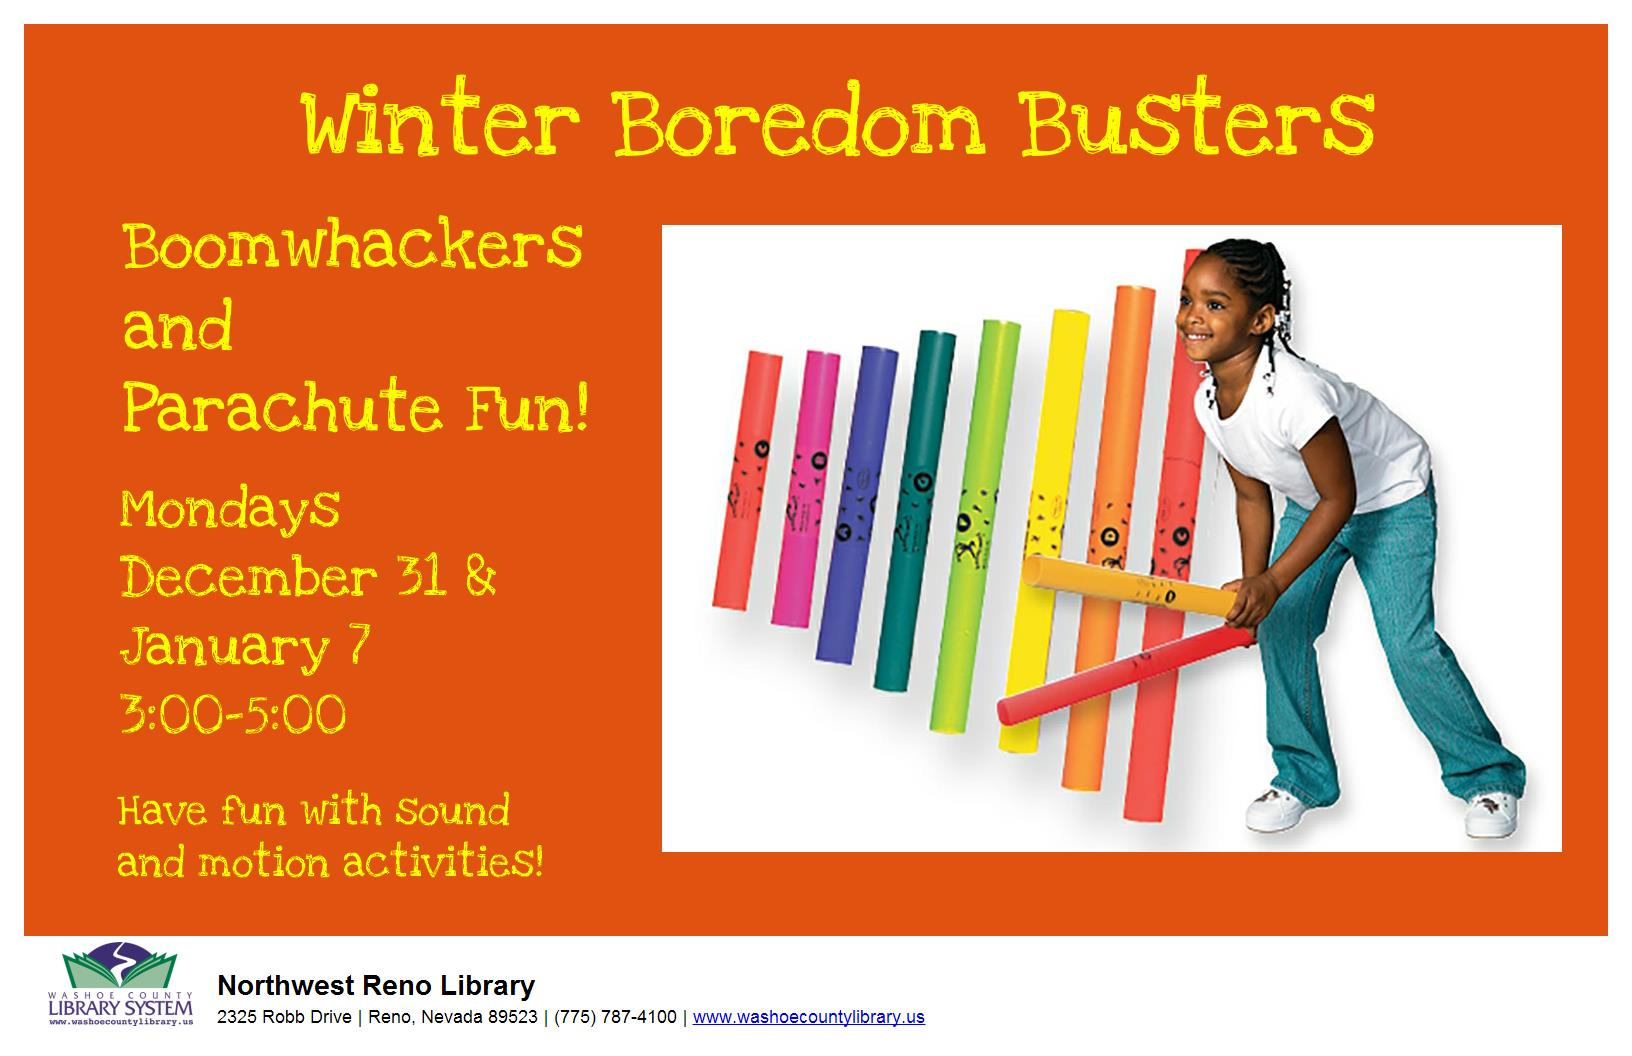 Boredom Busters: Boomwhackers® and Parachute Fun!